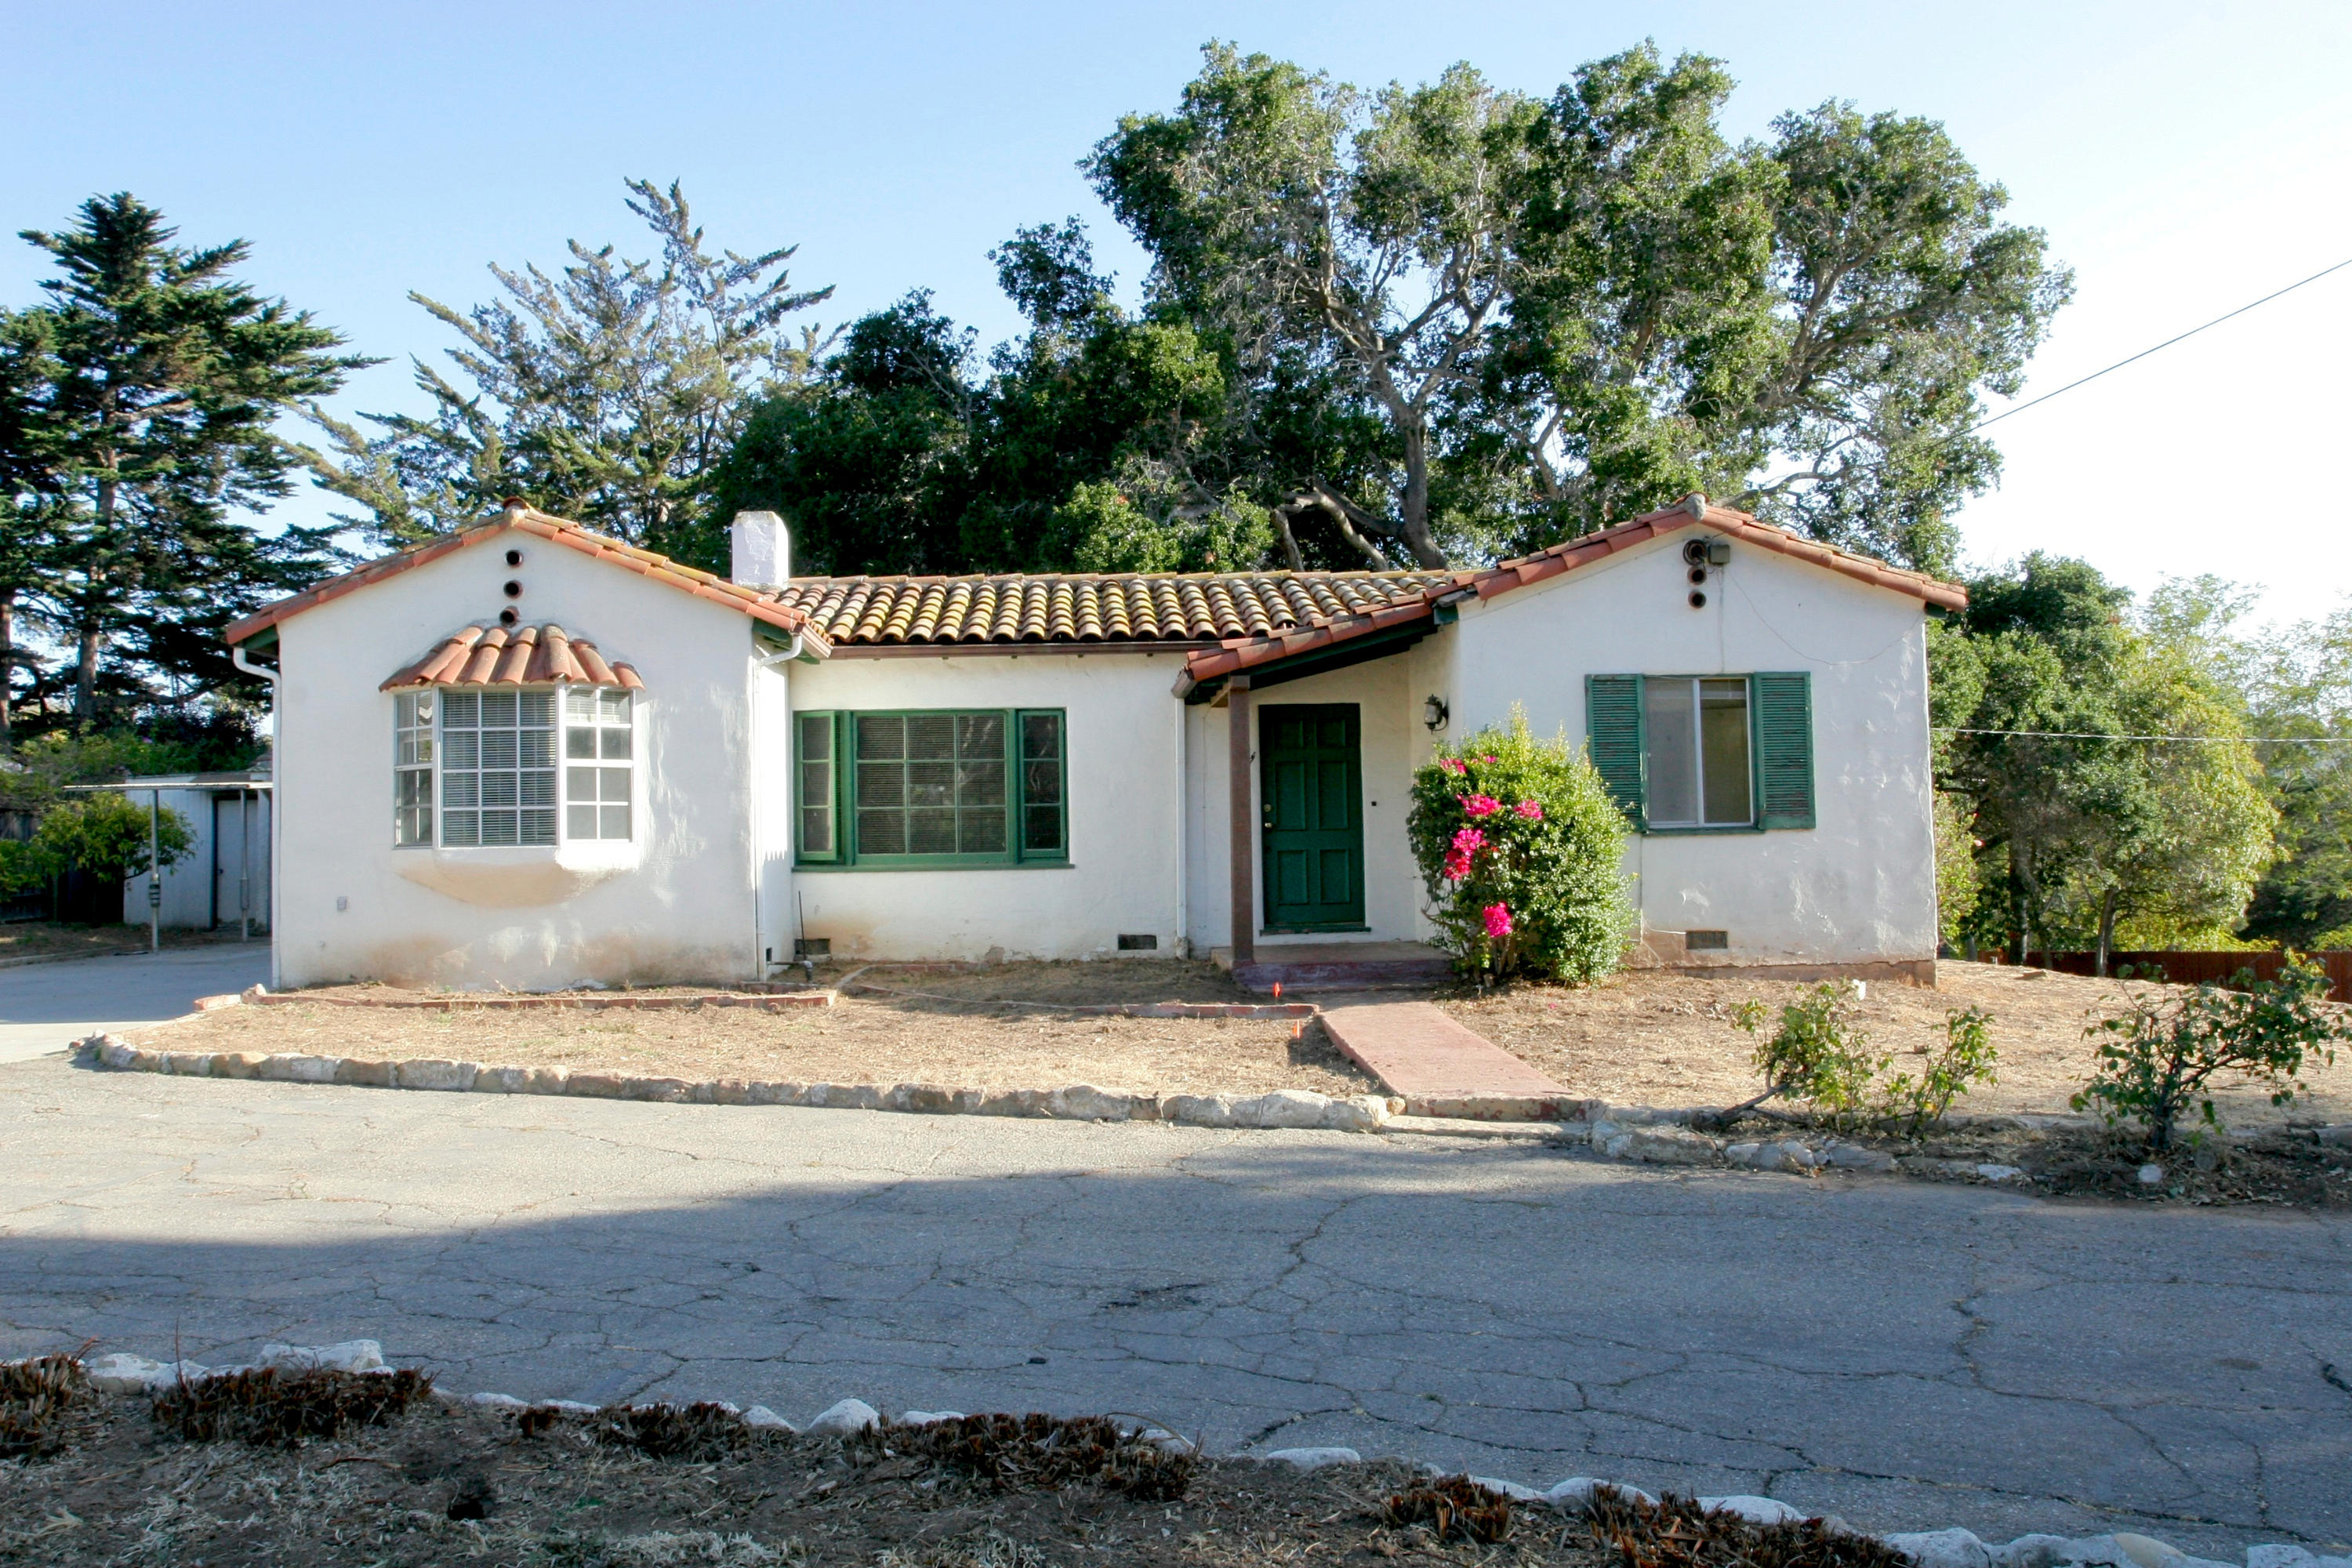 Property photo for 4535 Hollister Ave Santa Barbara, California 93110 - 14-2920